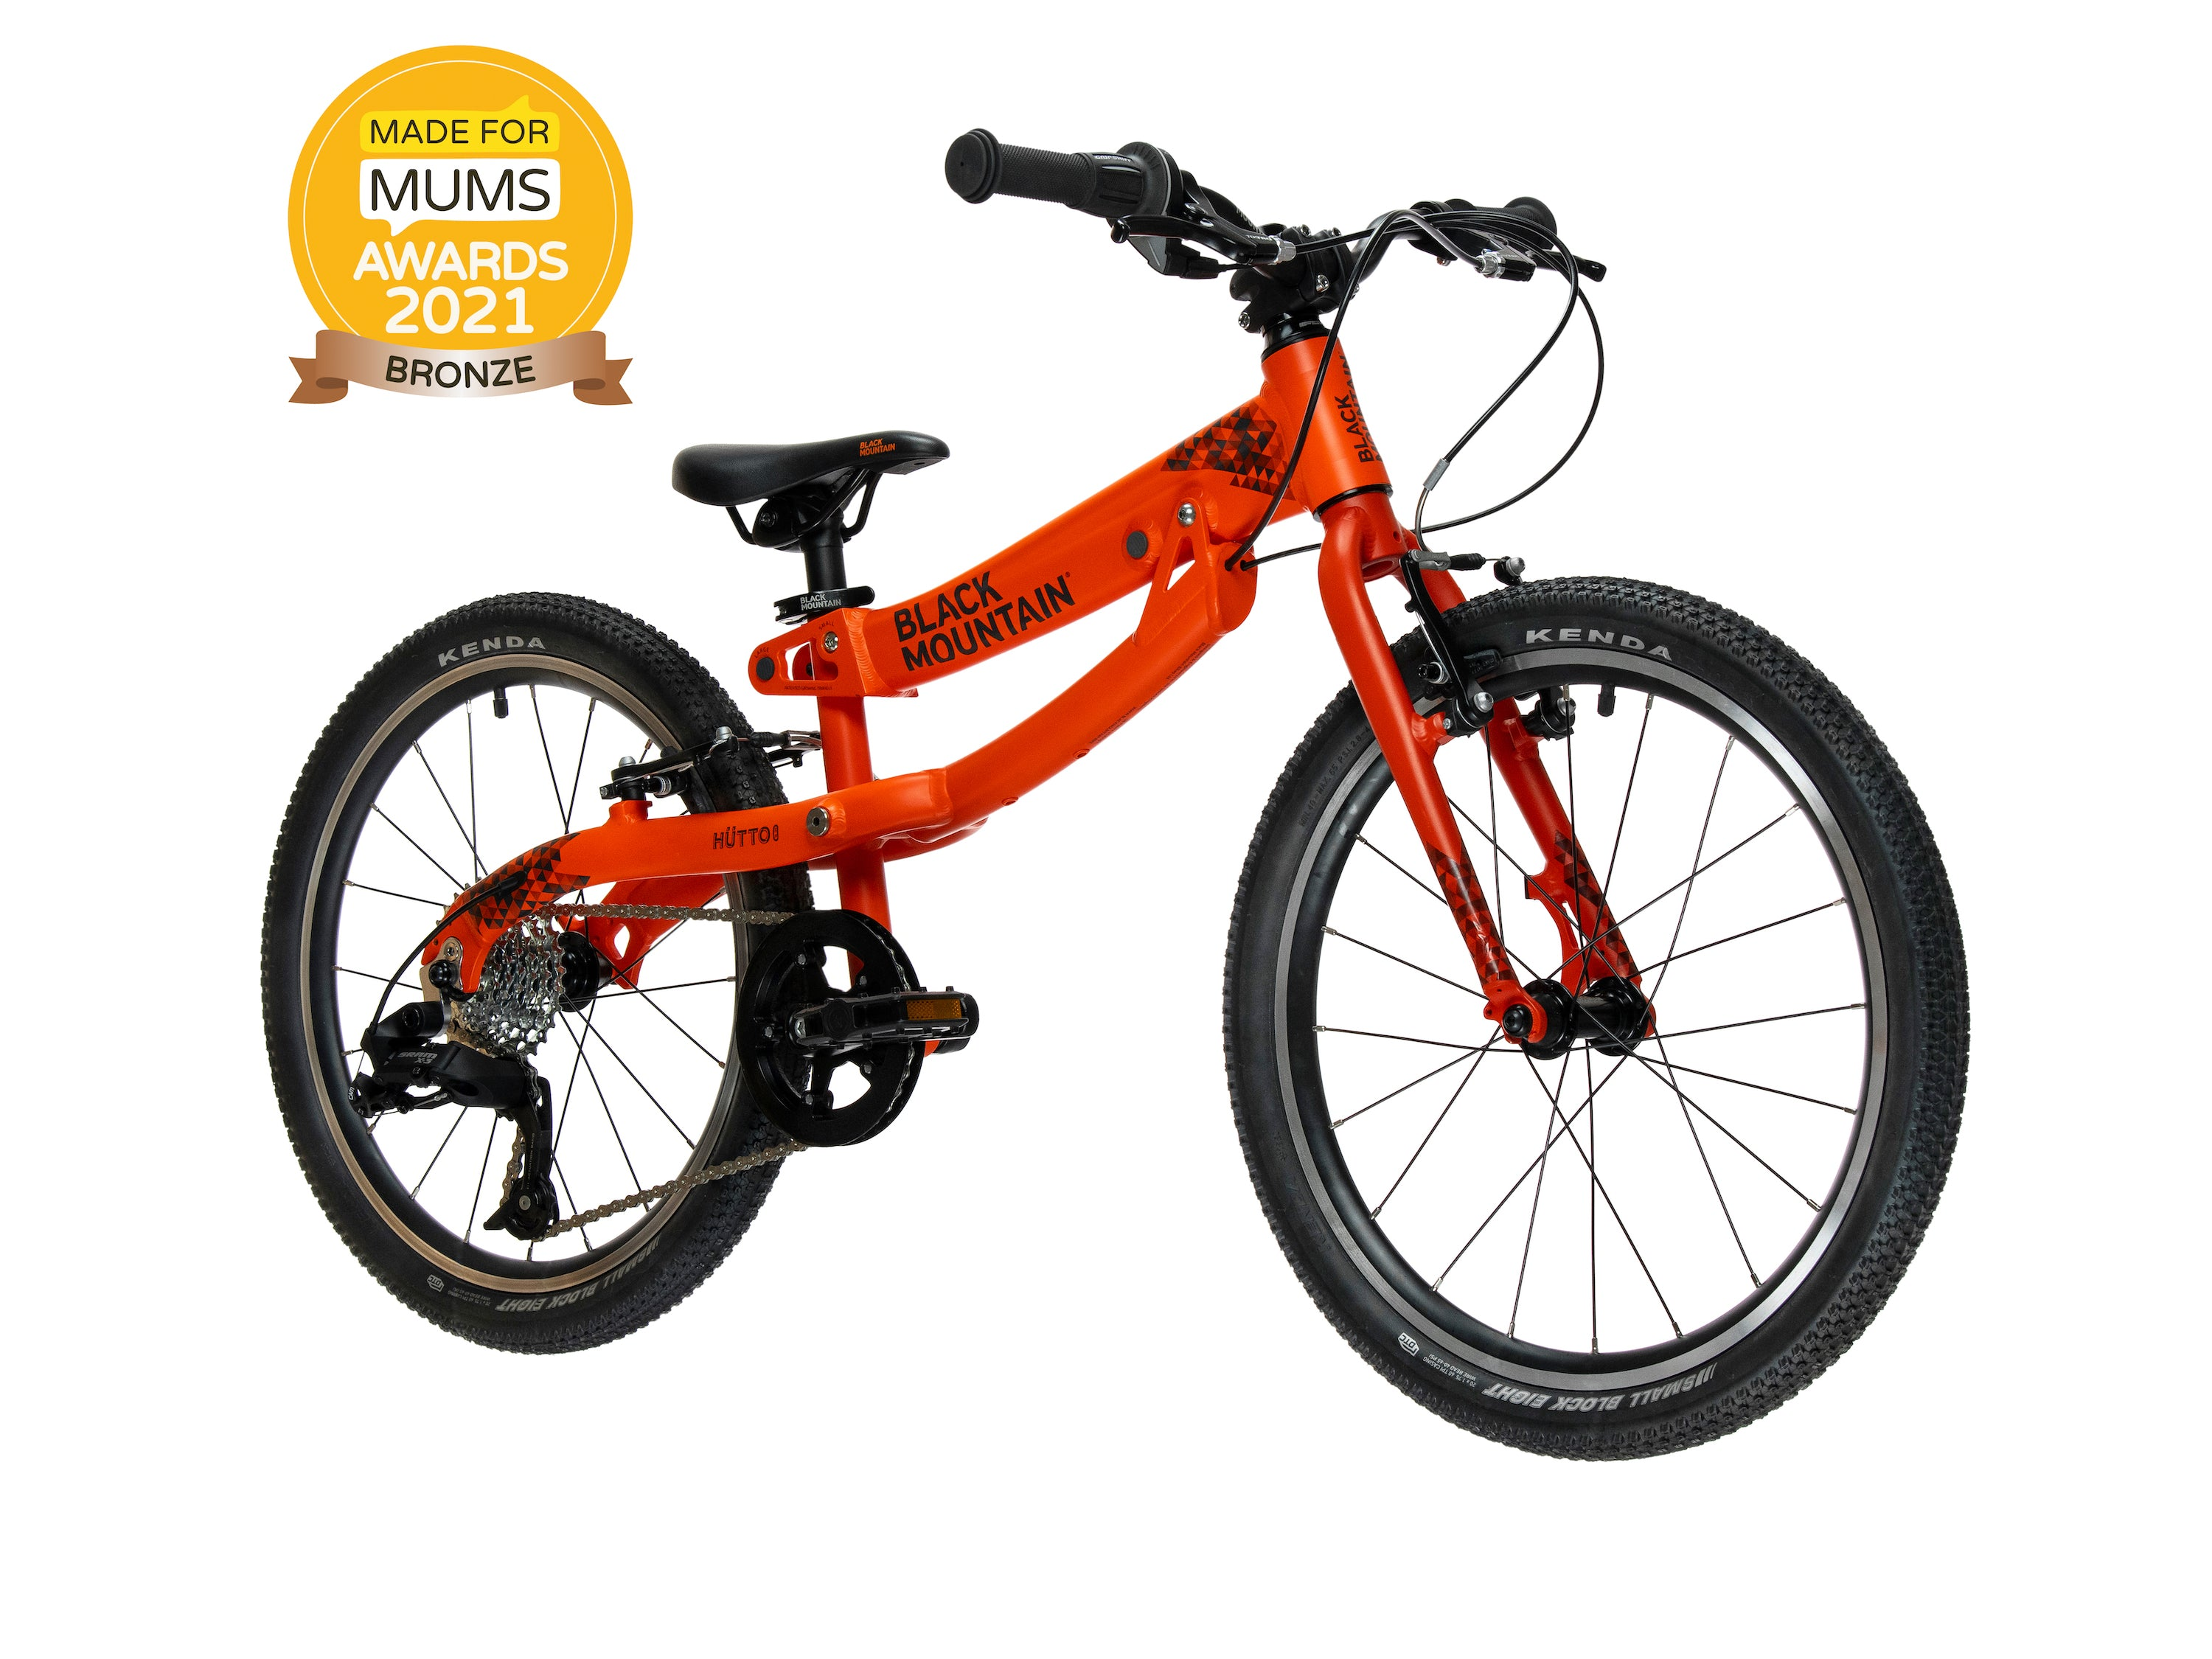 """20"""" kids bike with Made For Mums award badge"""